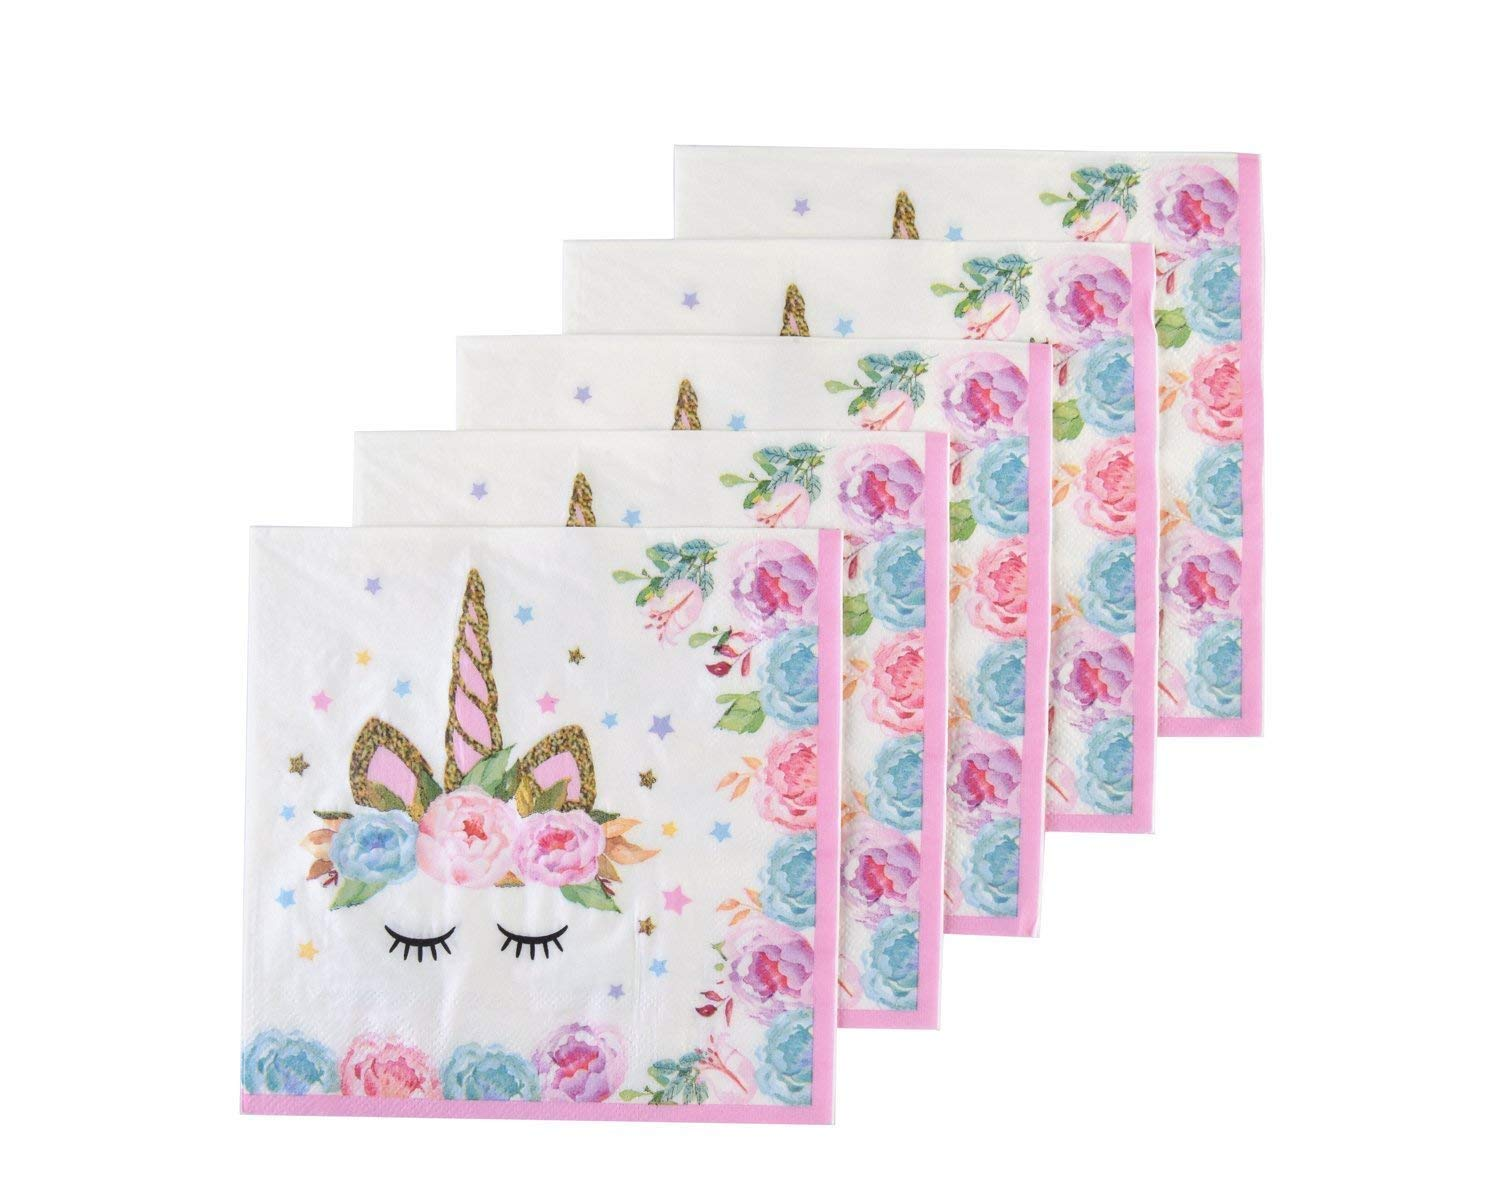 Unicorn Party Supplies for Baby Shower 50 Pck United Unicorns Pink Unicorn Napkins for Girls Birthday Party Unicorn Tableware Disposable Paper Napkins